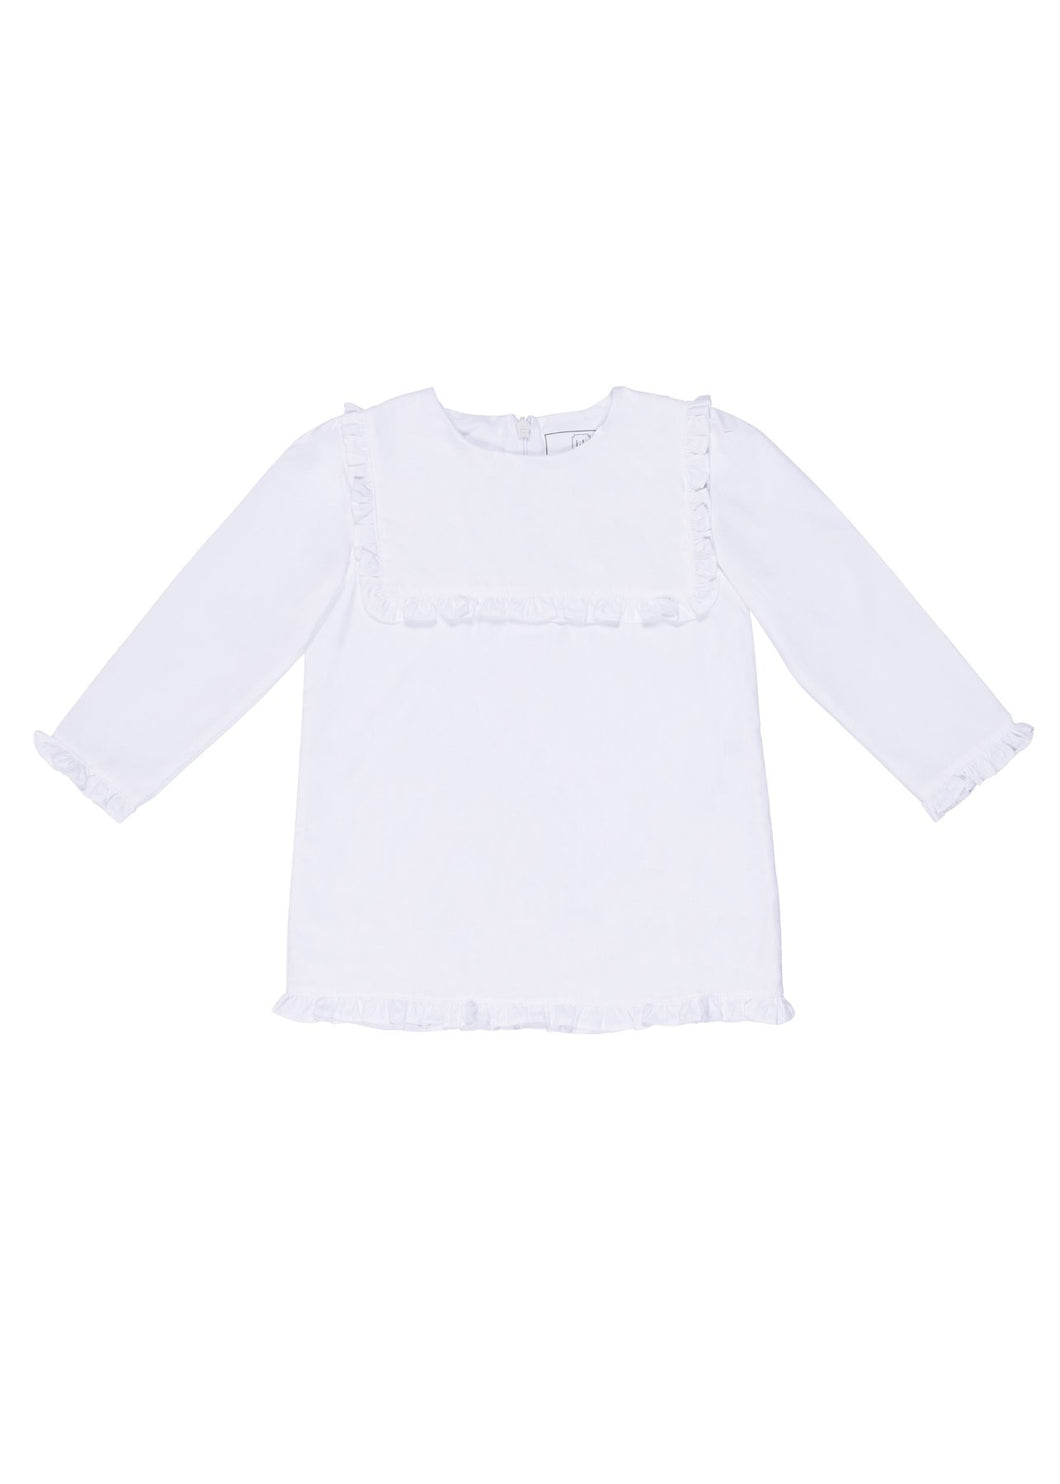 White Long Sleeve with Woven Square Collar